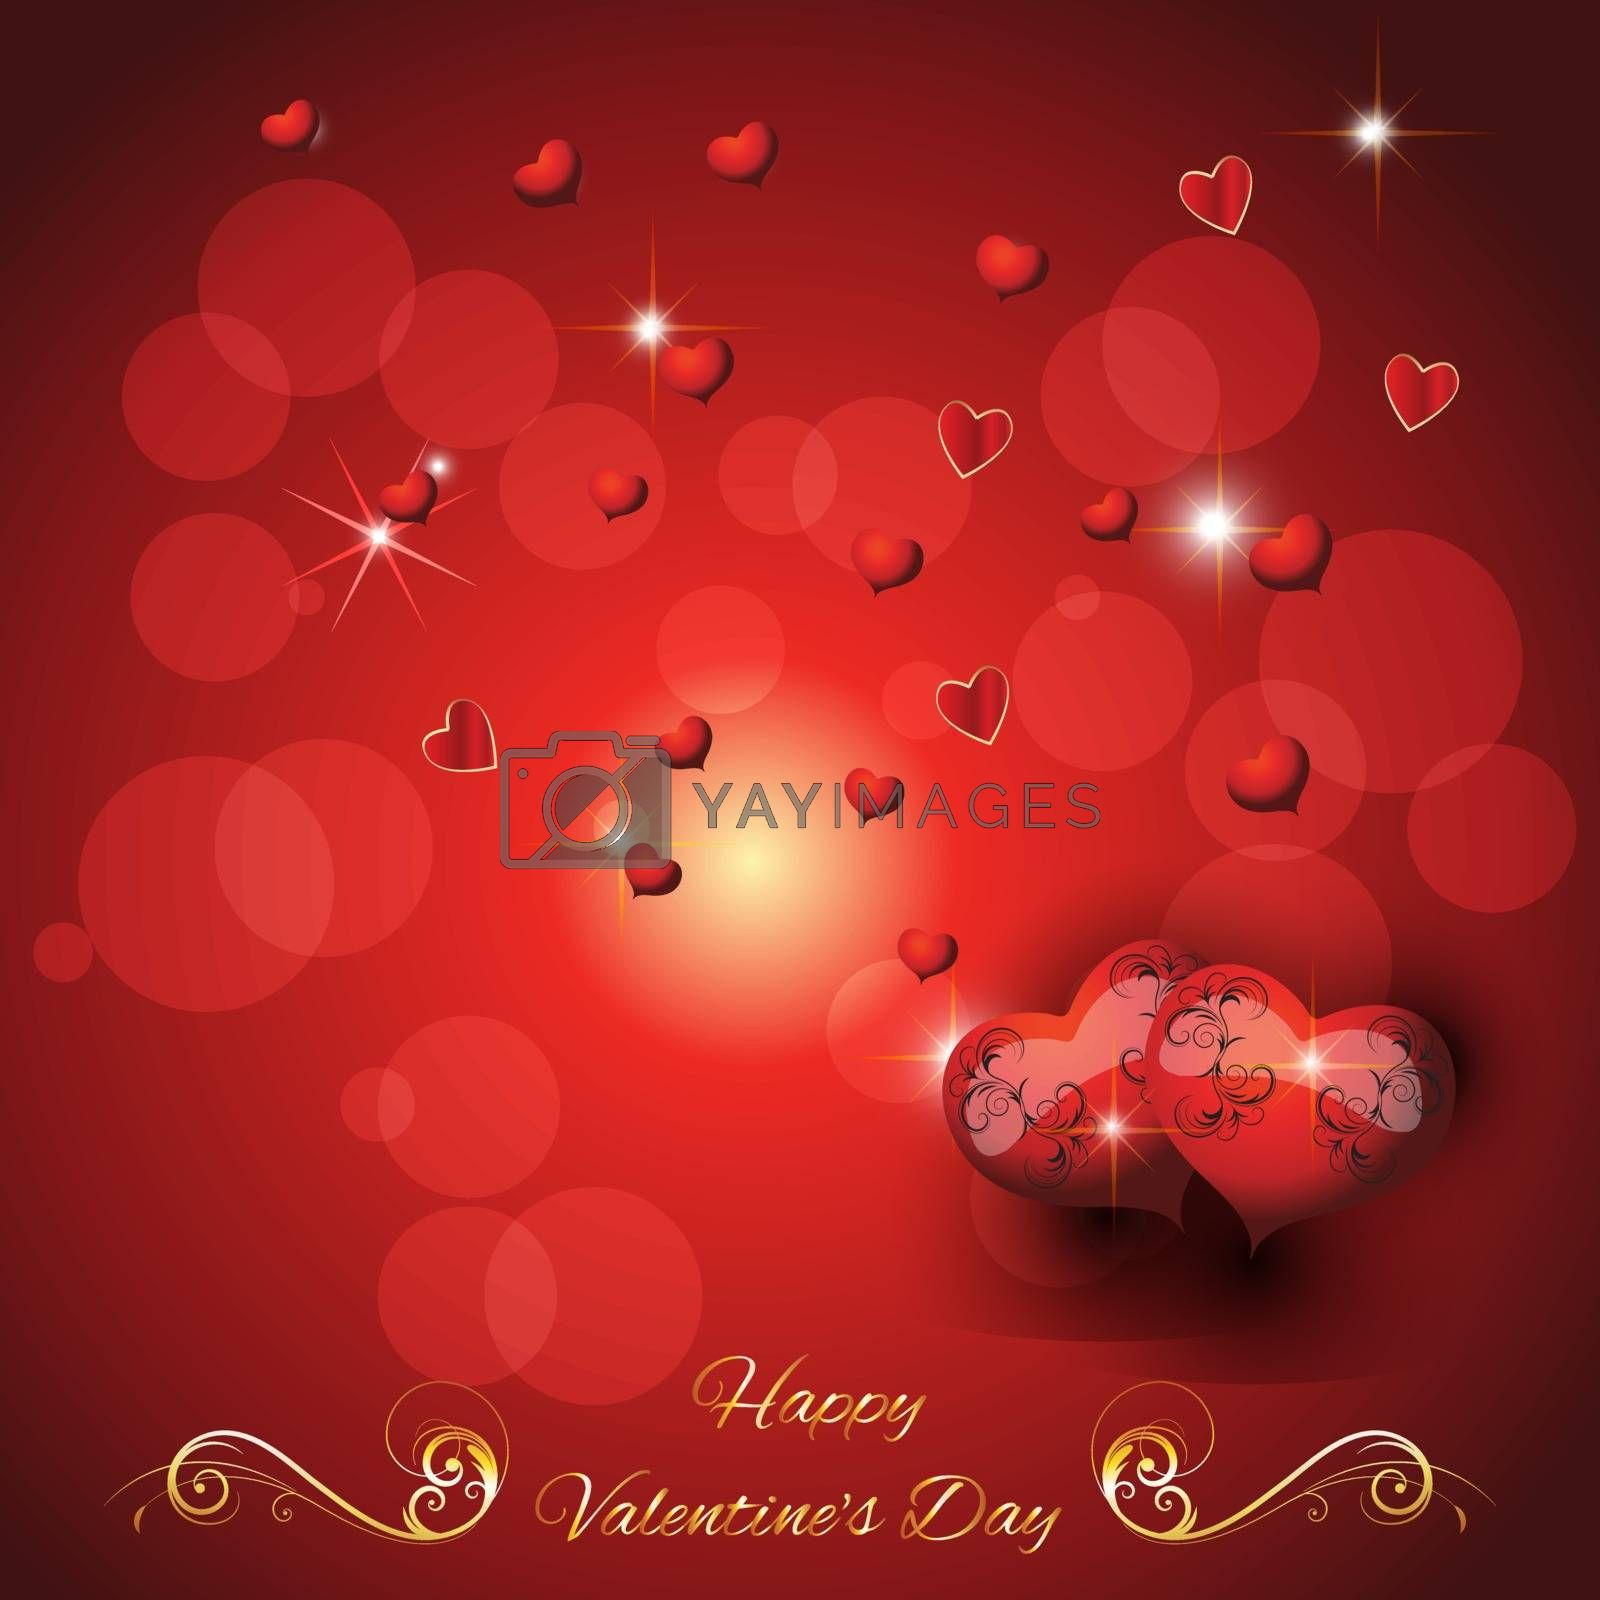 Royalty free image of greeting card  valentine's day by andreyl